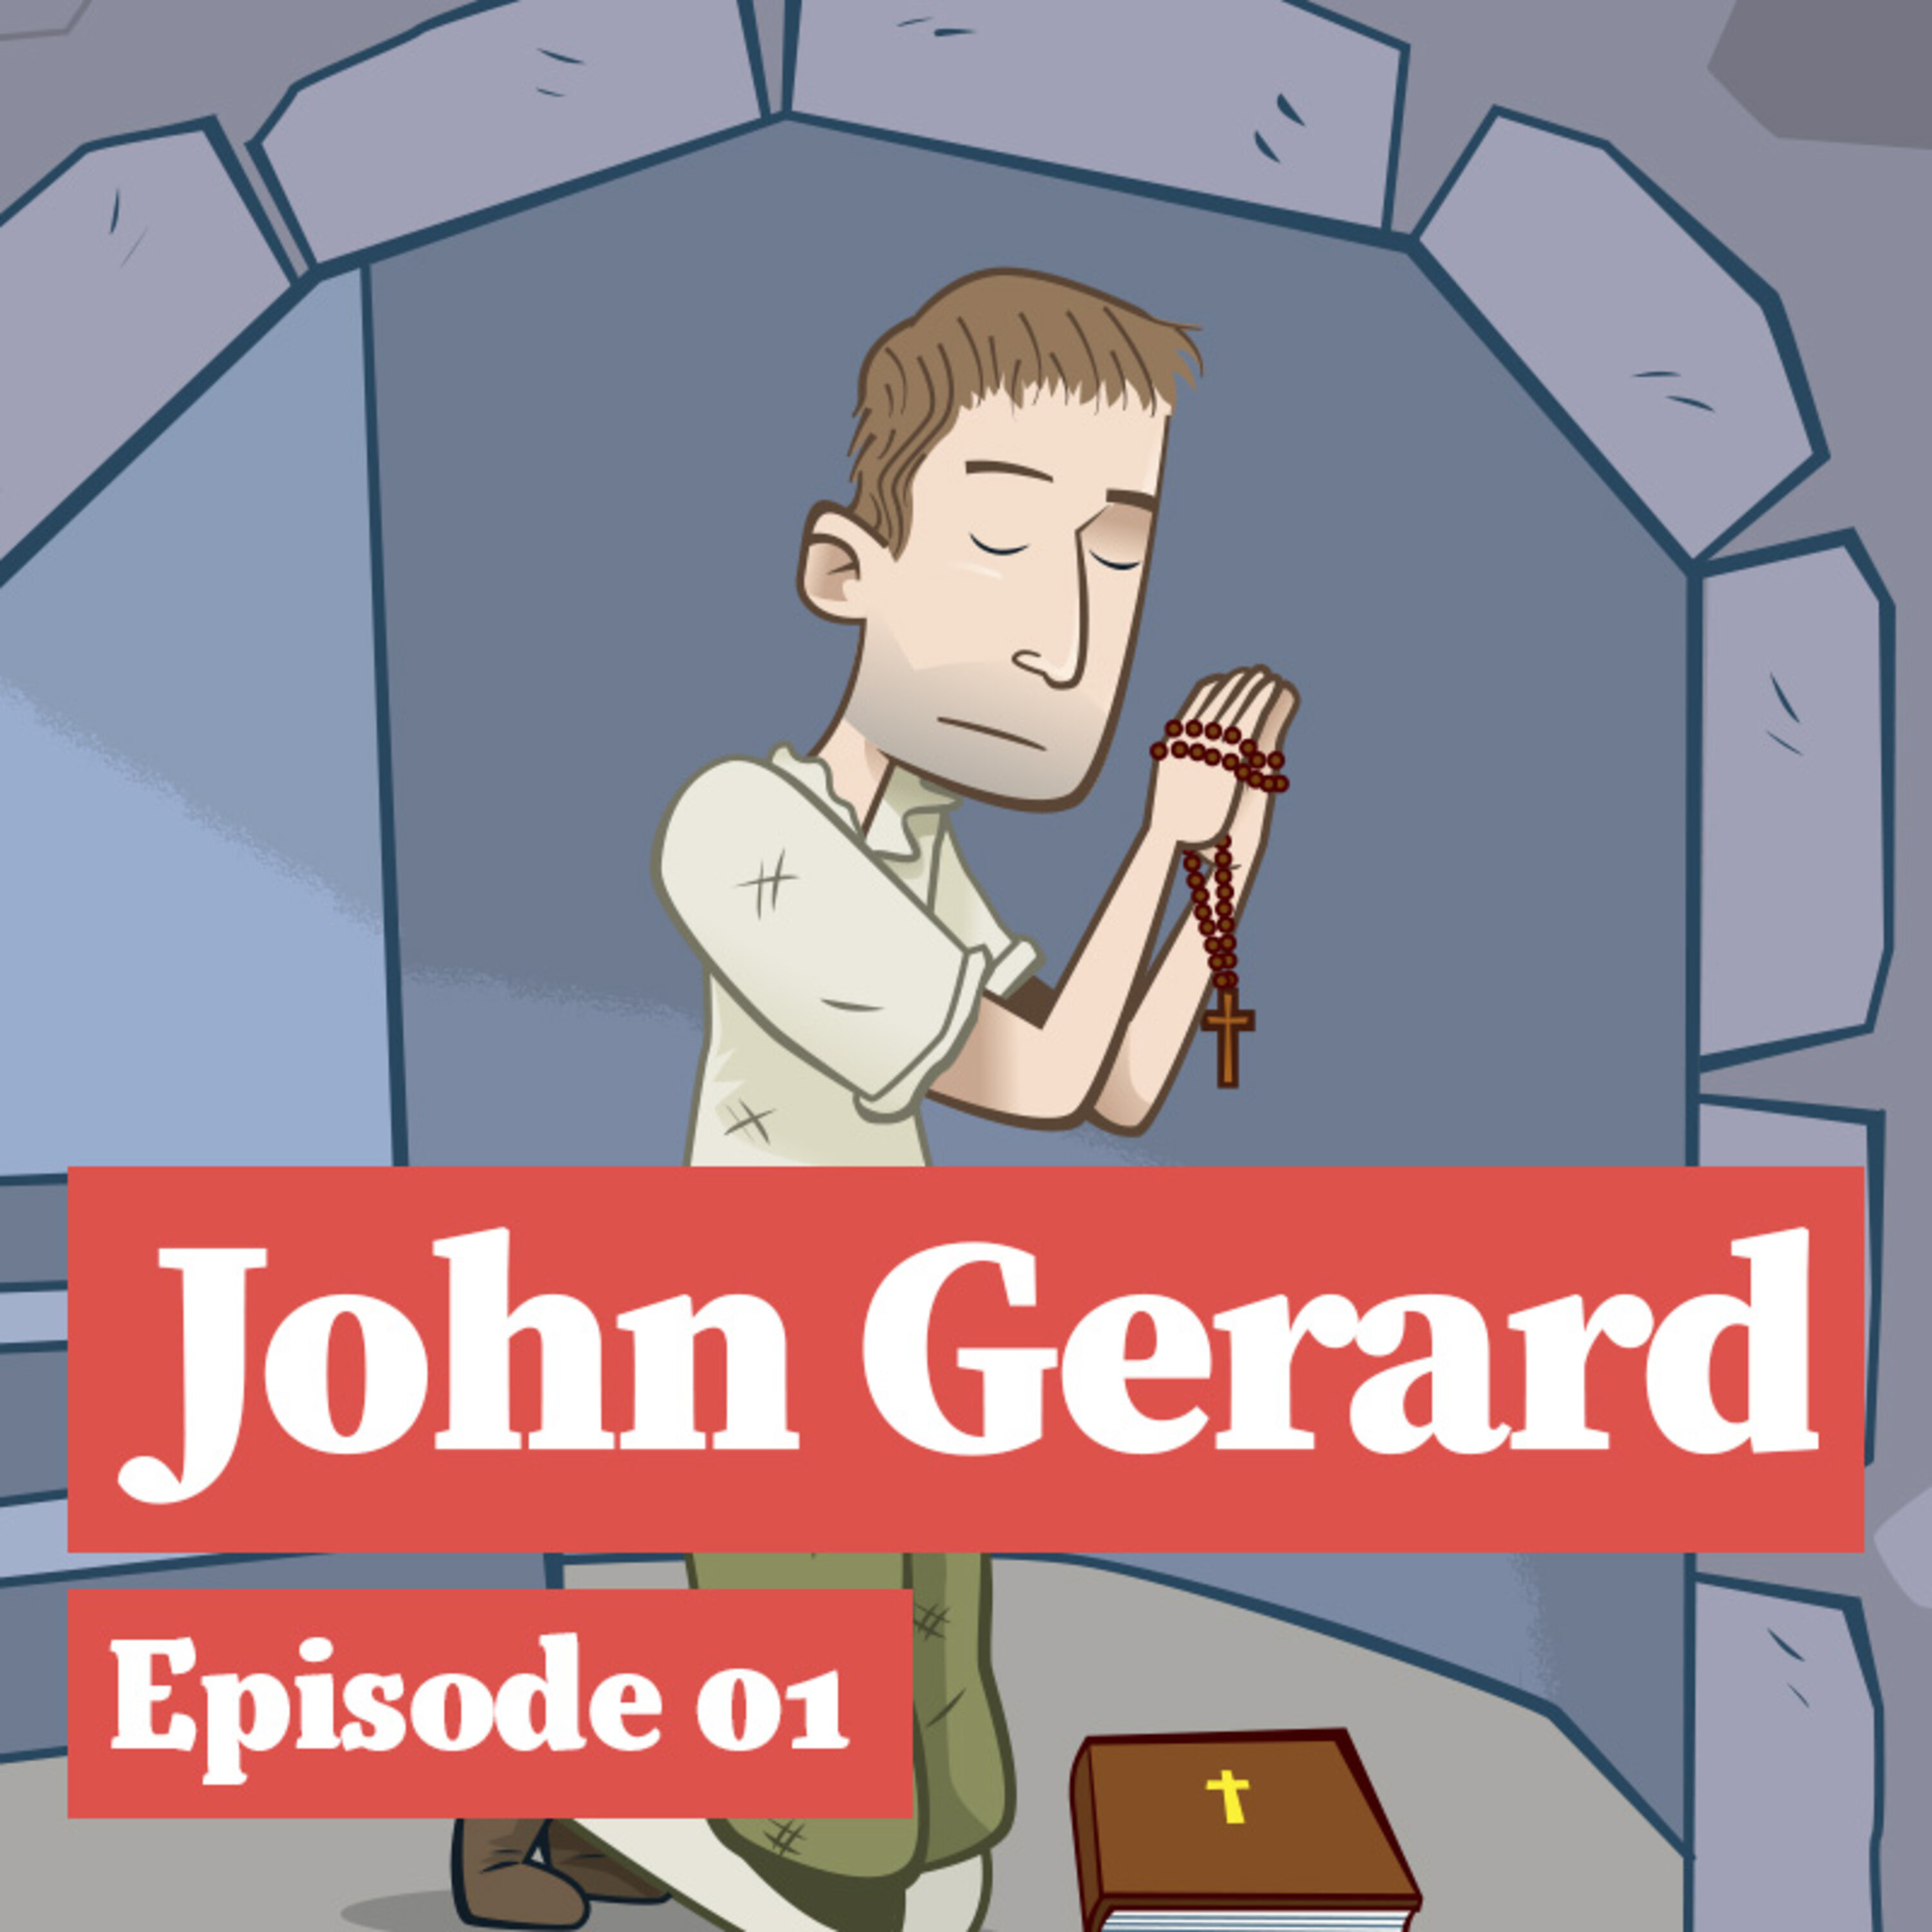 John Gerard and how he escaped the Tower of London